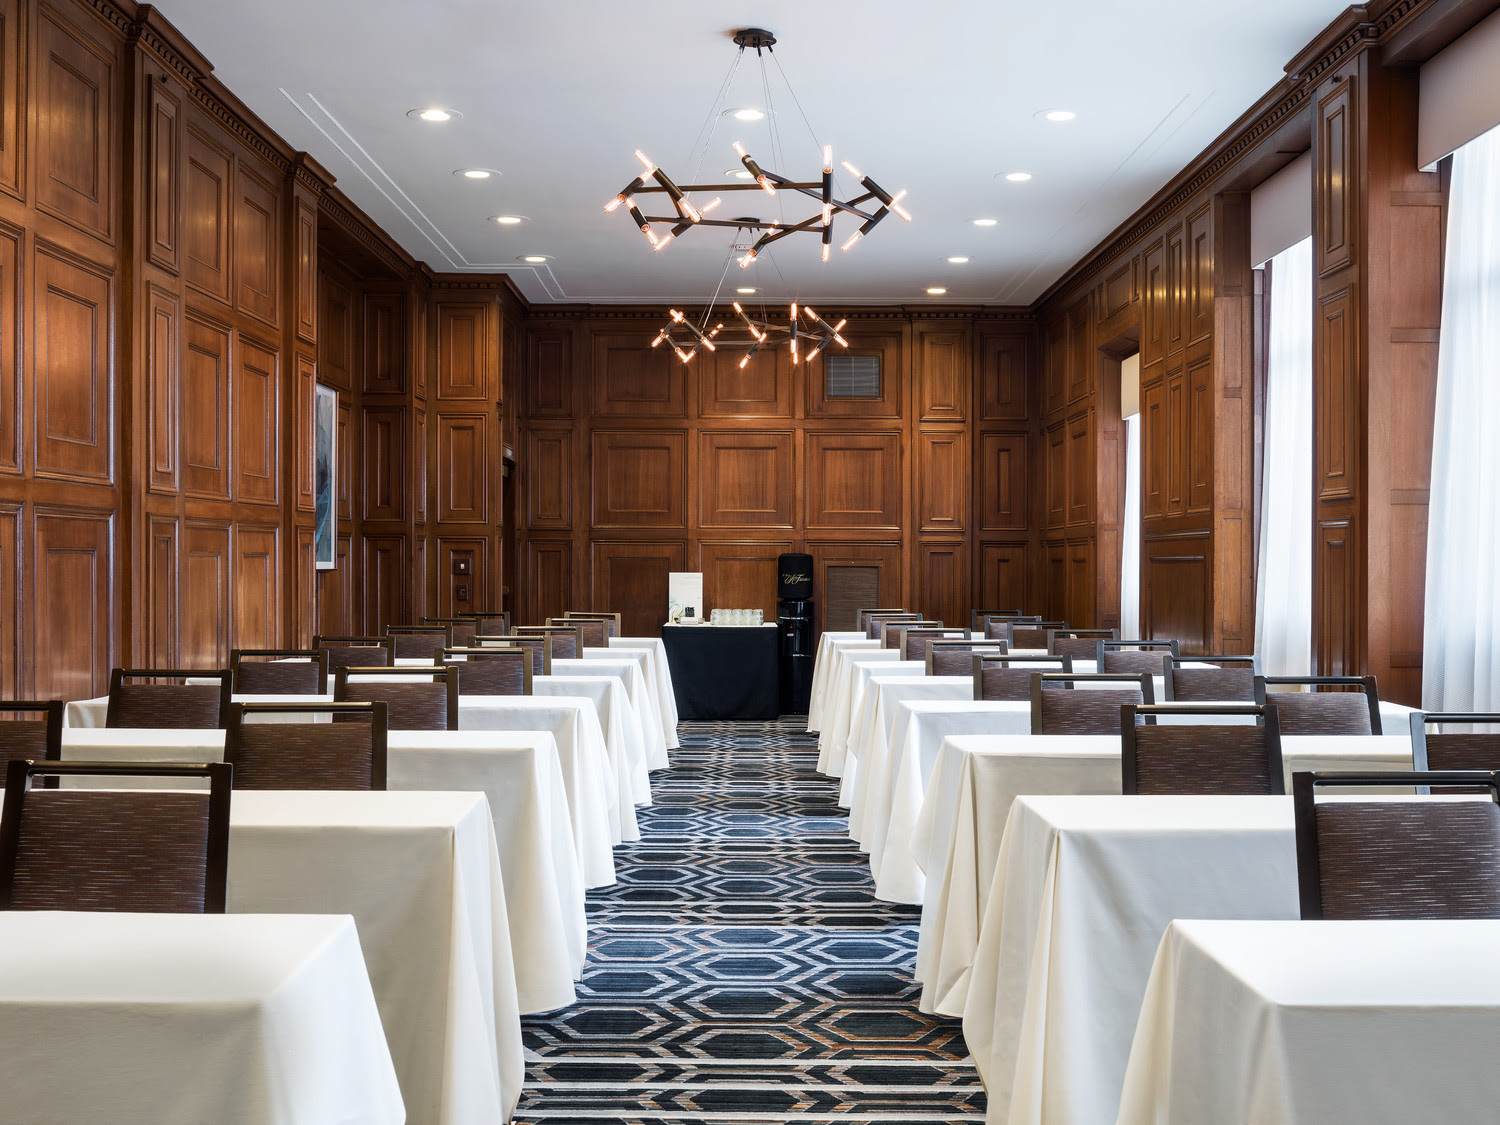 Westin St. Francis debuts updated meeting space on Eventinterface